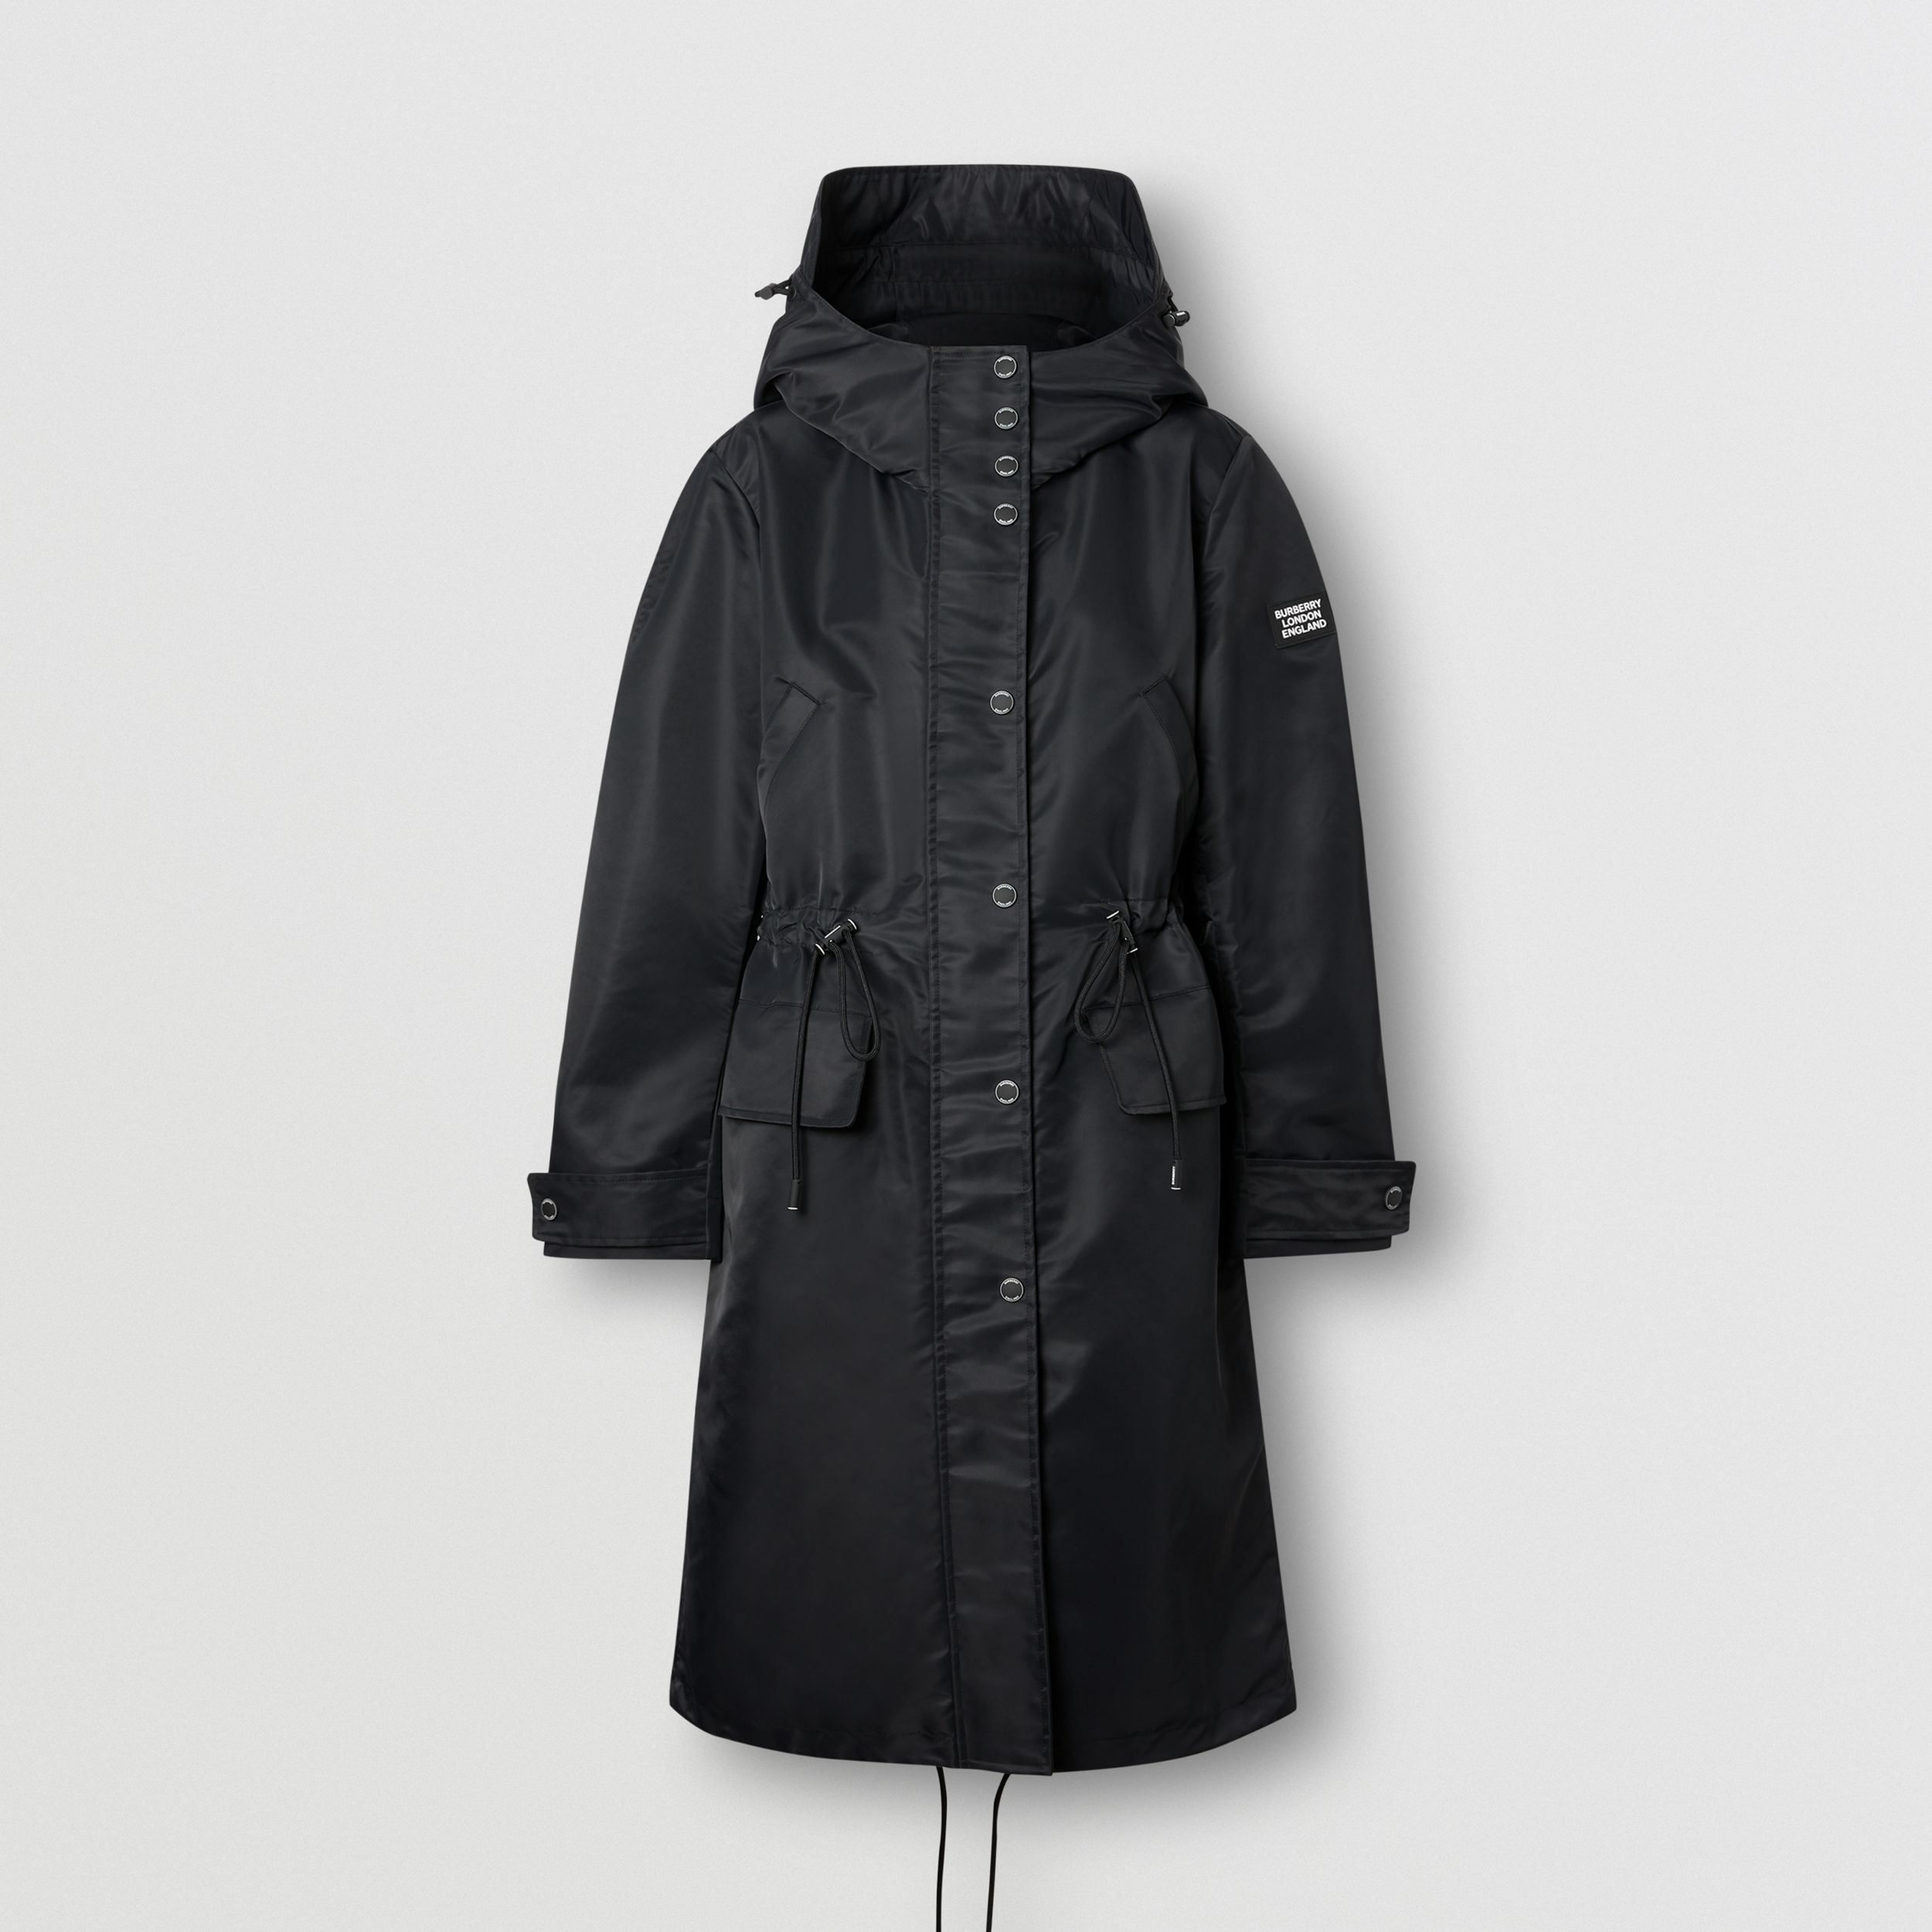 Horseferry Print Recycled Nylon Parka in Black - Women | Burberry - 4